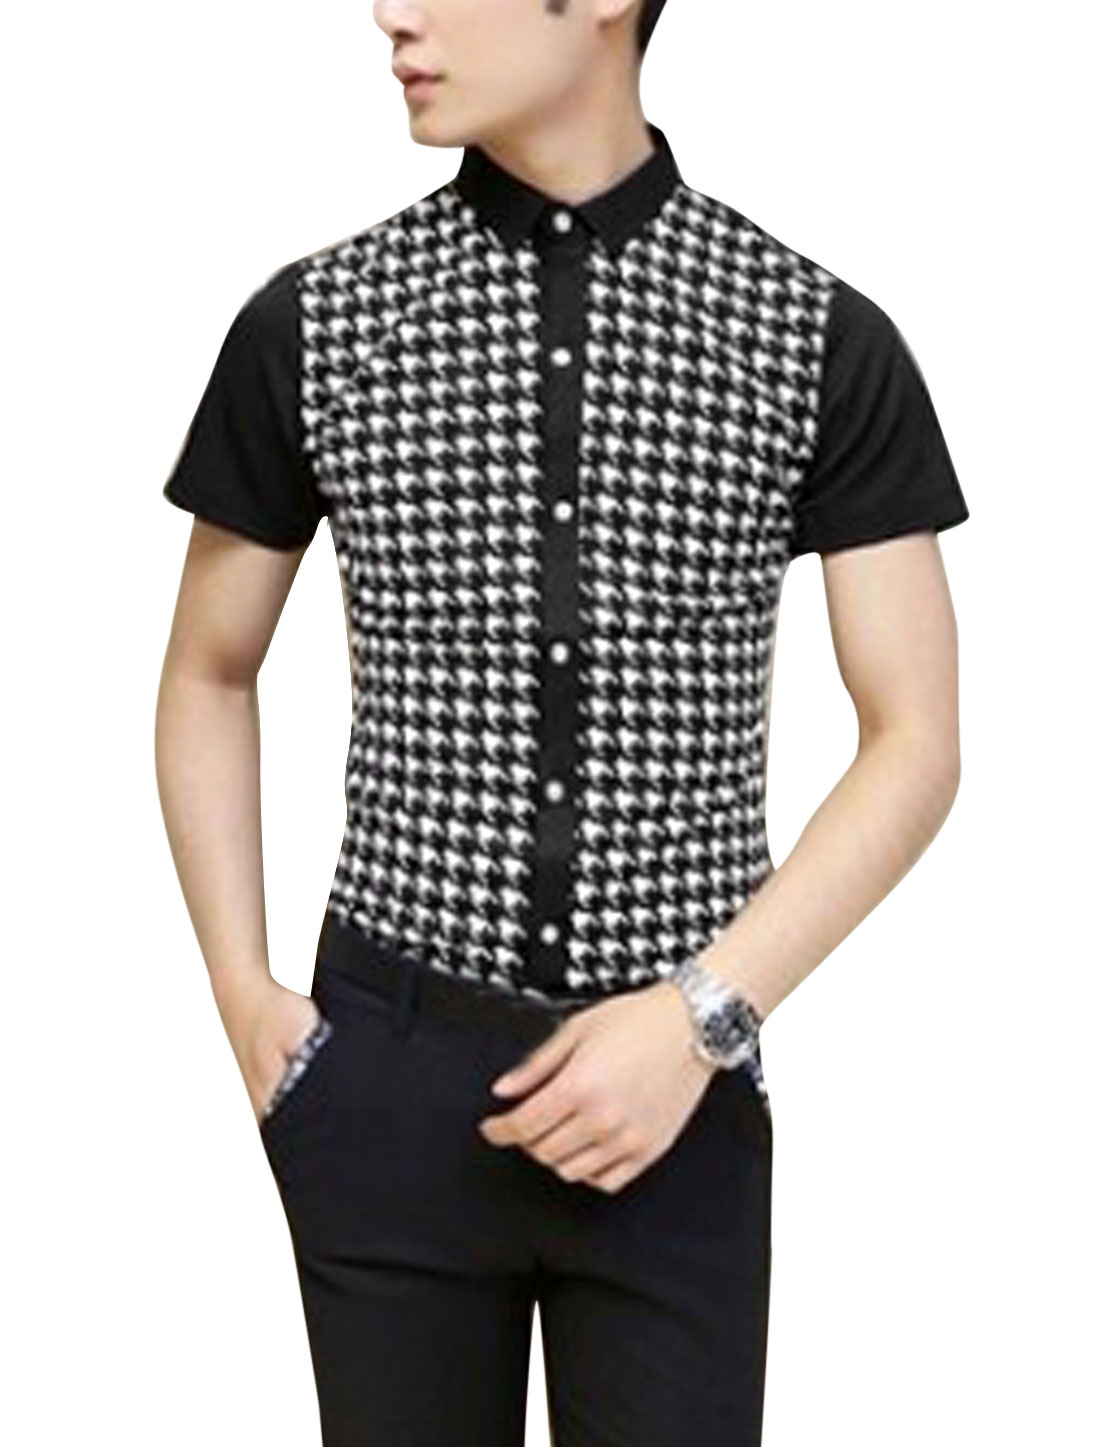 Men Houndstooth Pattern Point Collar Short Sleeve Casual Shirt Black S